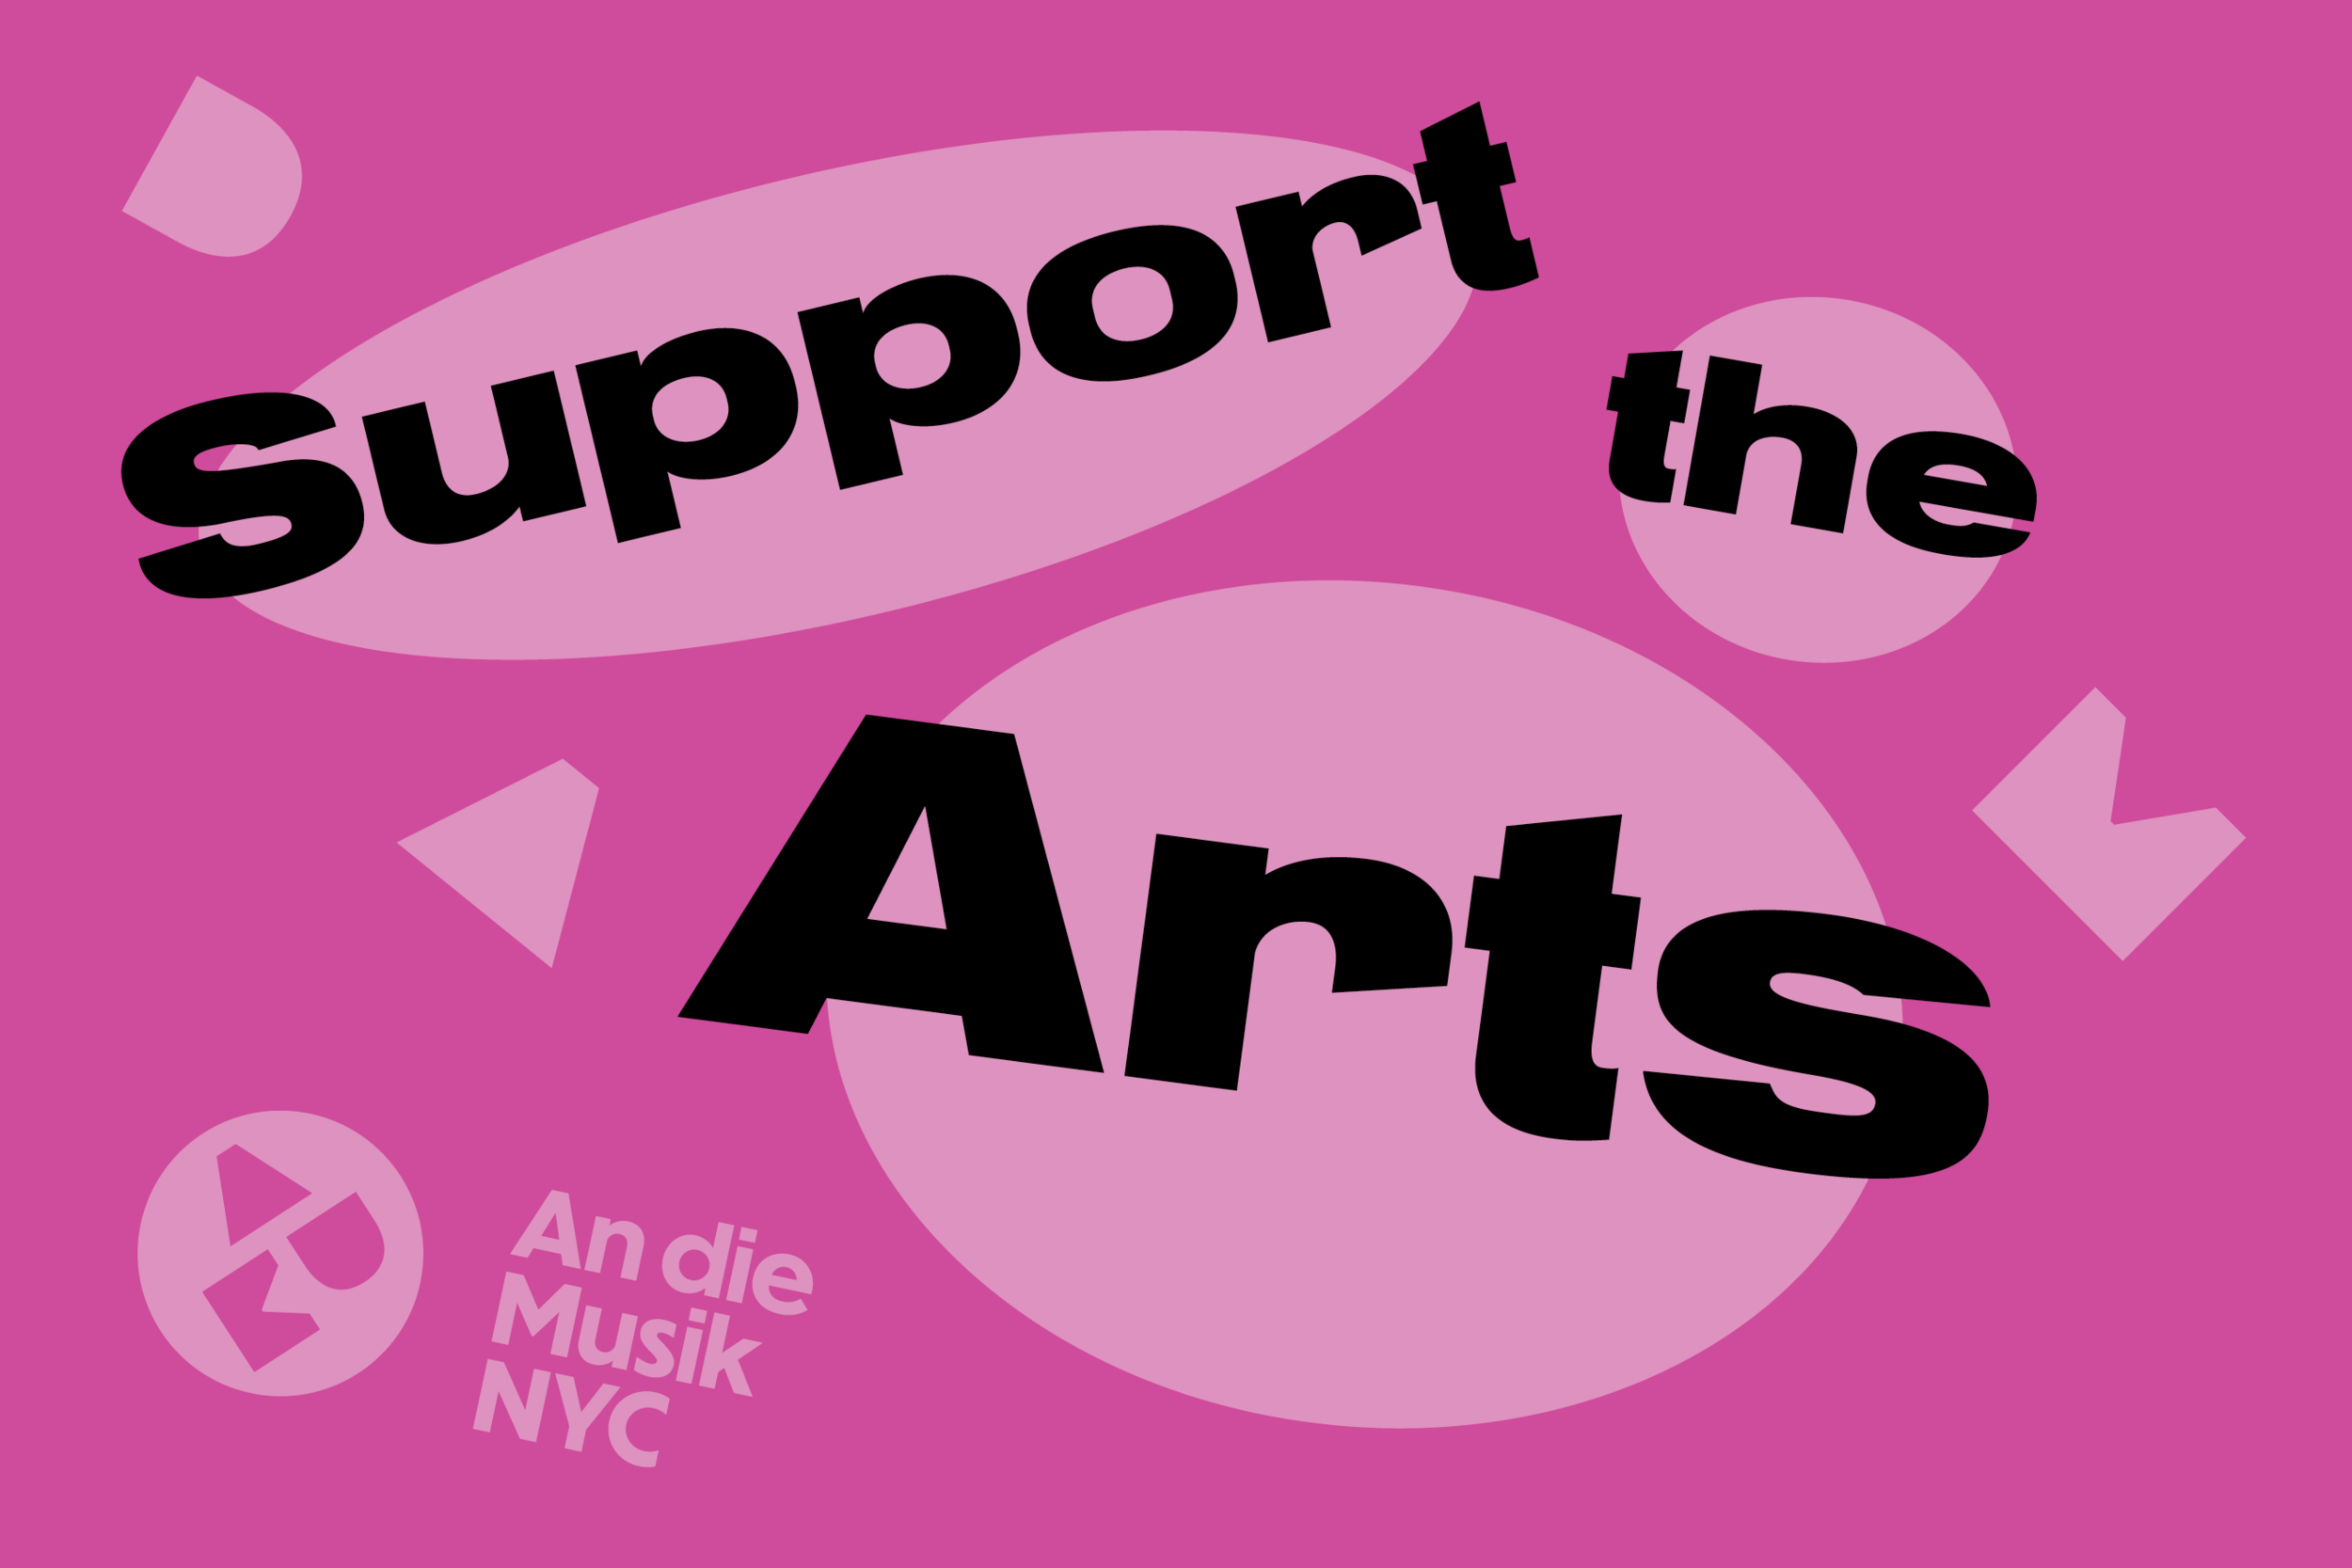 - Your donations make thisconcert series possibleDonate today